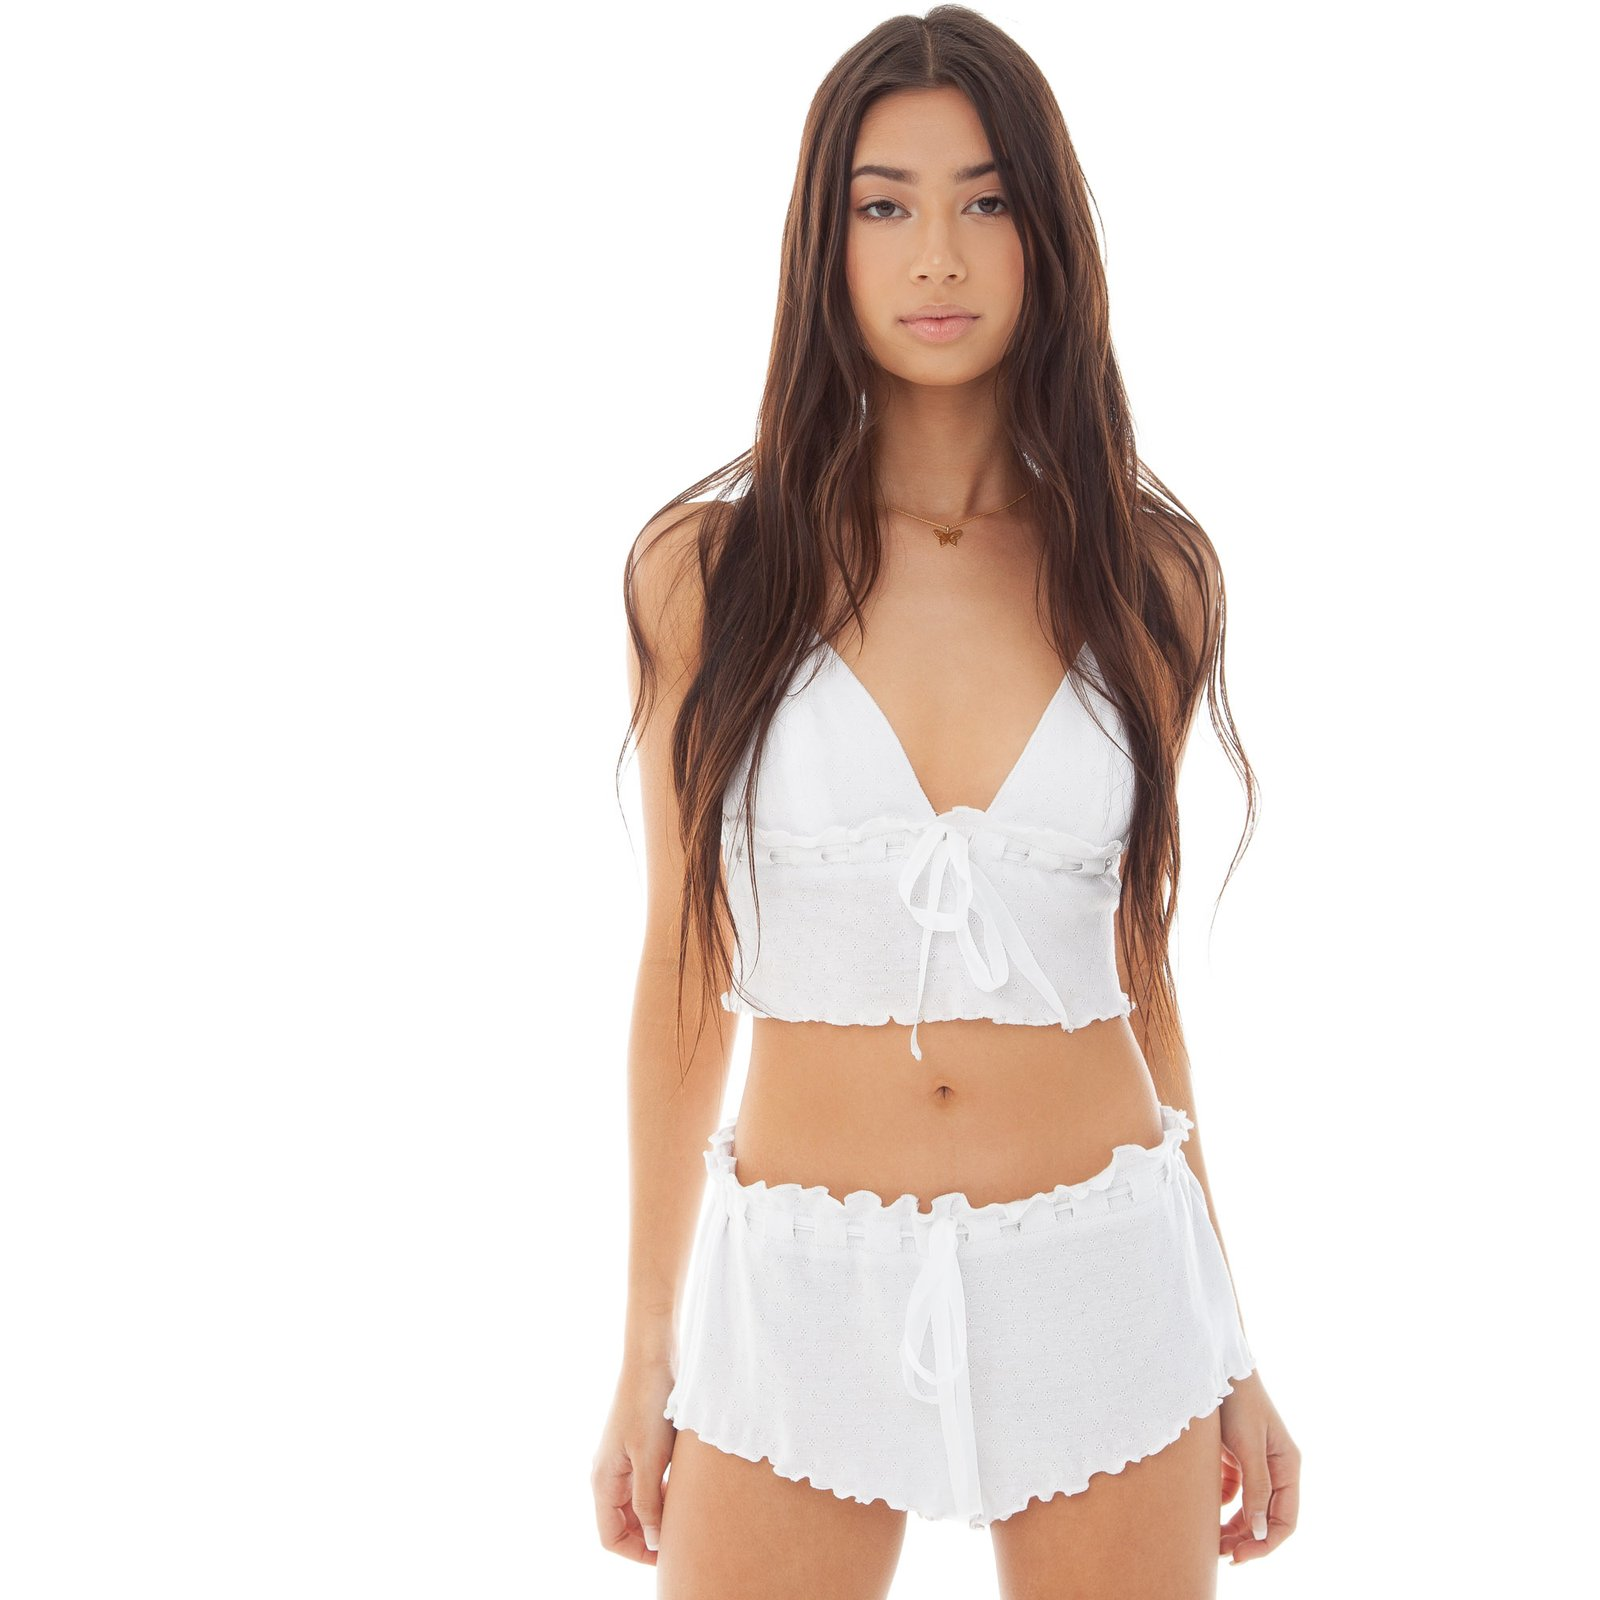 Leeyu Short by Are You Am I, available on areyouami.com for $120 Kendall Jenner Shorts SIMILAR PRODUCT